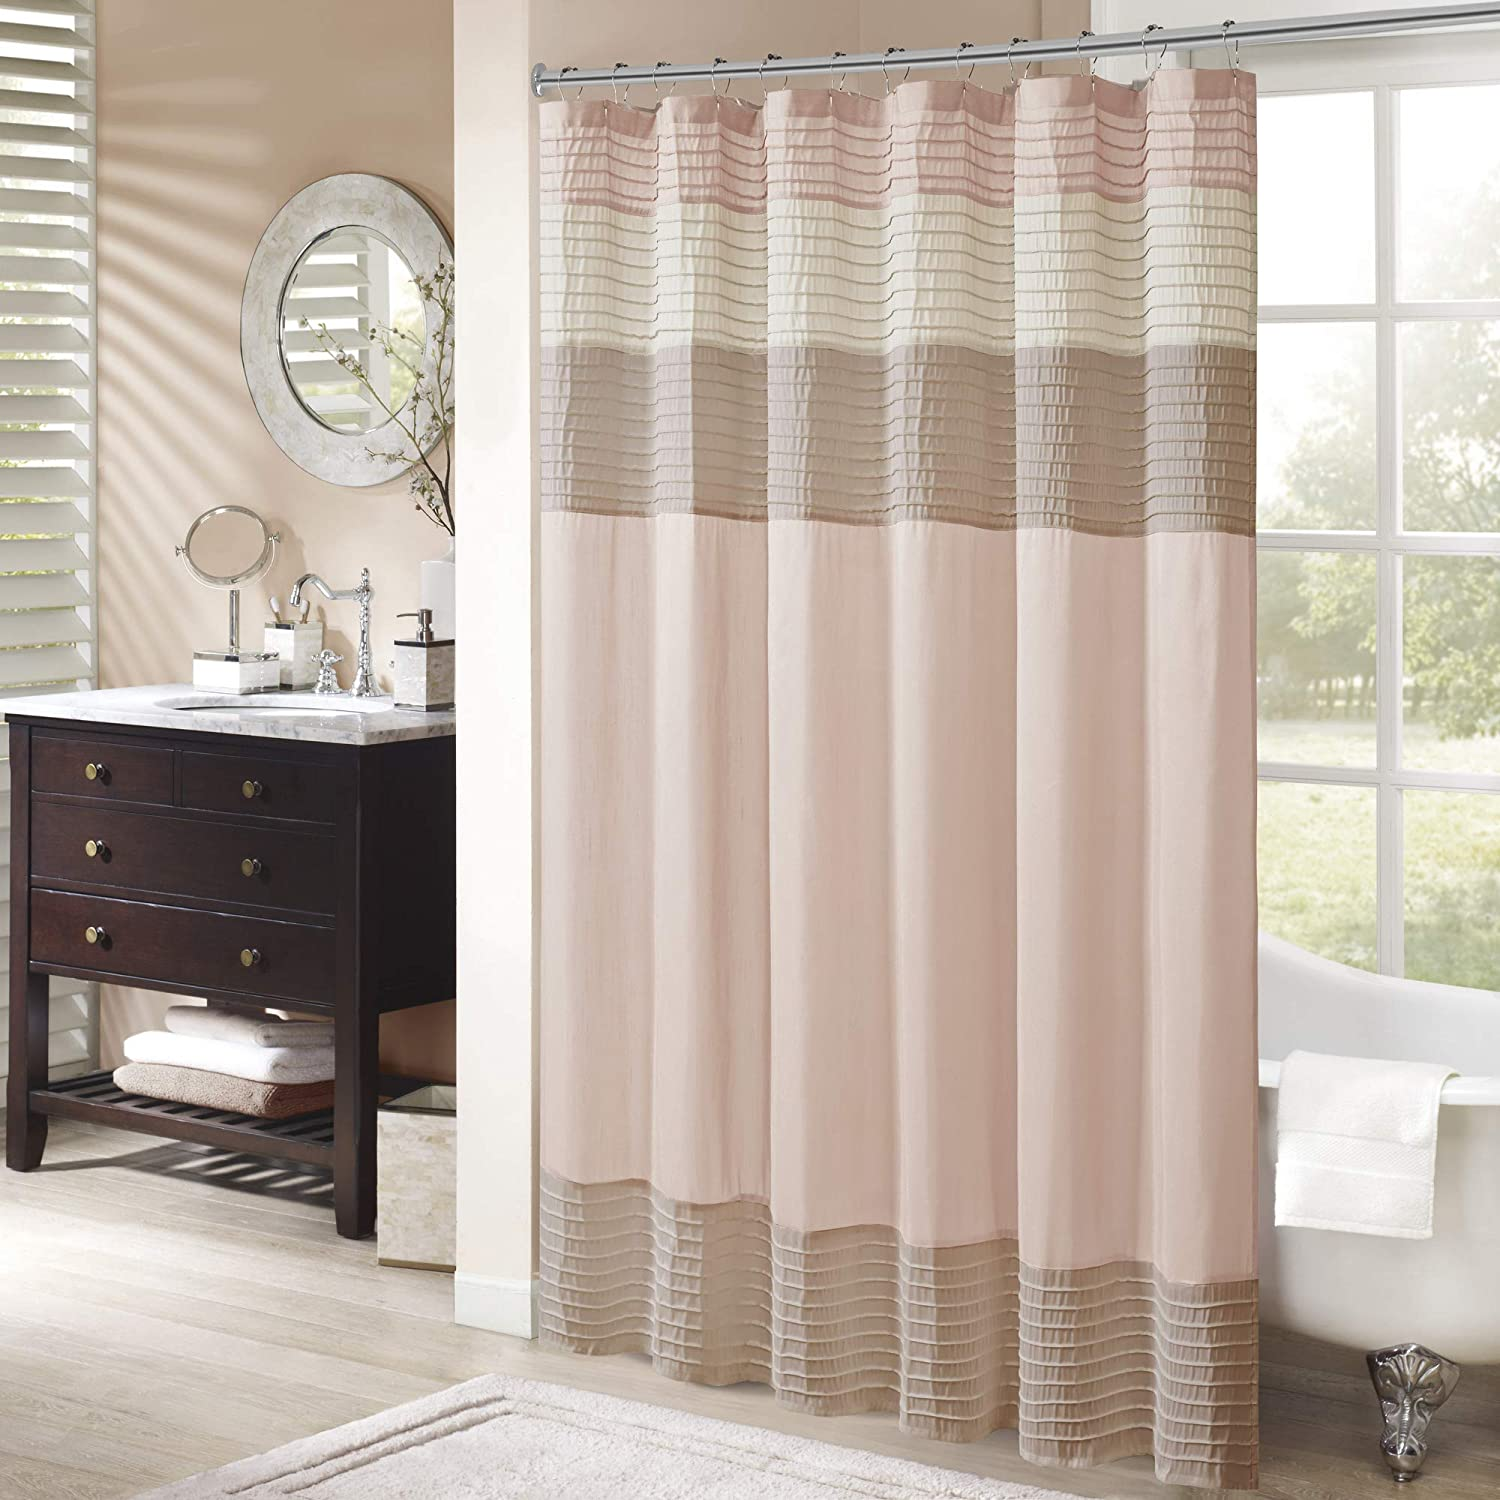 "Madison Park Amherst Fabric Shower Curtain Faux Silk Pieced Striped Machine Washable Modern Home Bathroom Decor, Bathtub Privacy Screen, 72"" x 72"", Blush"